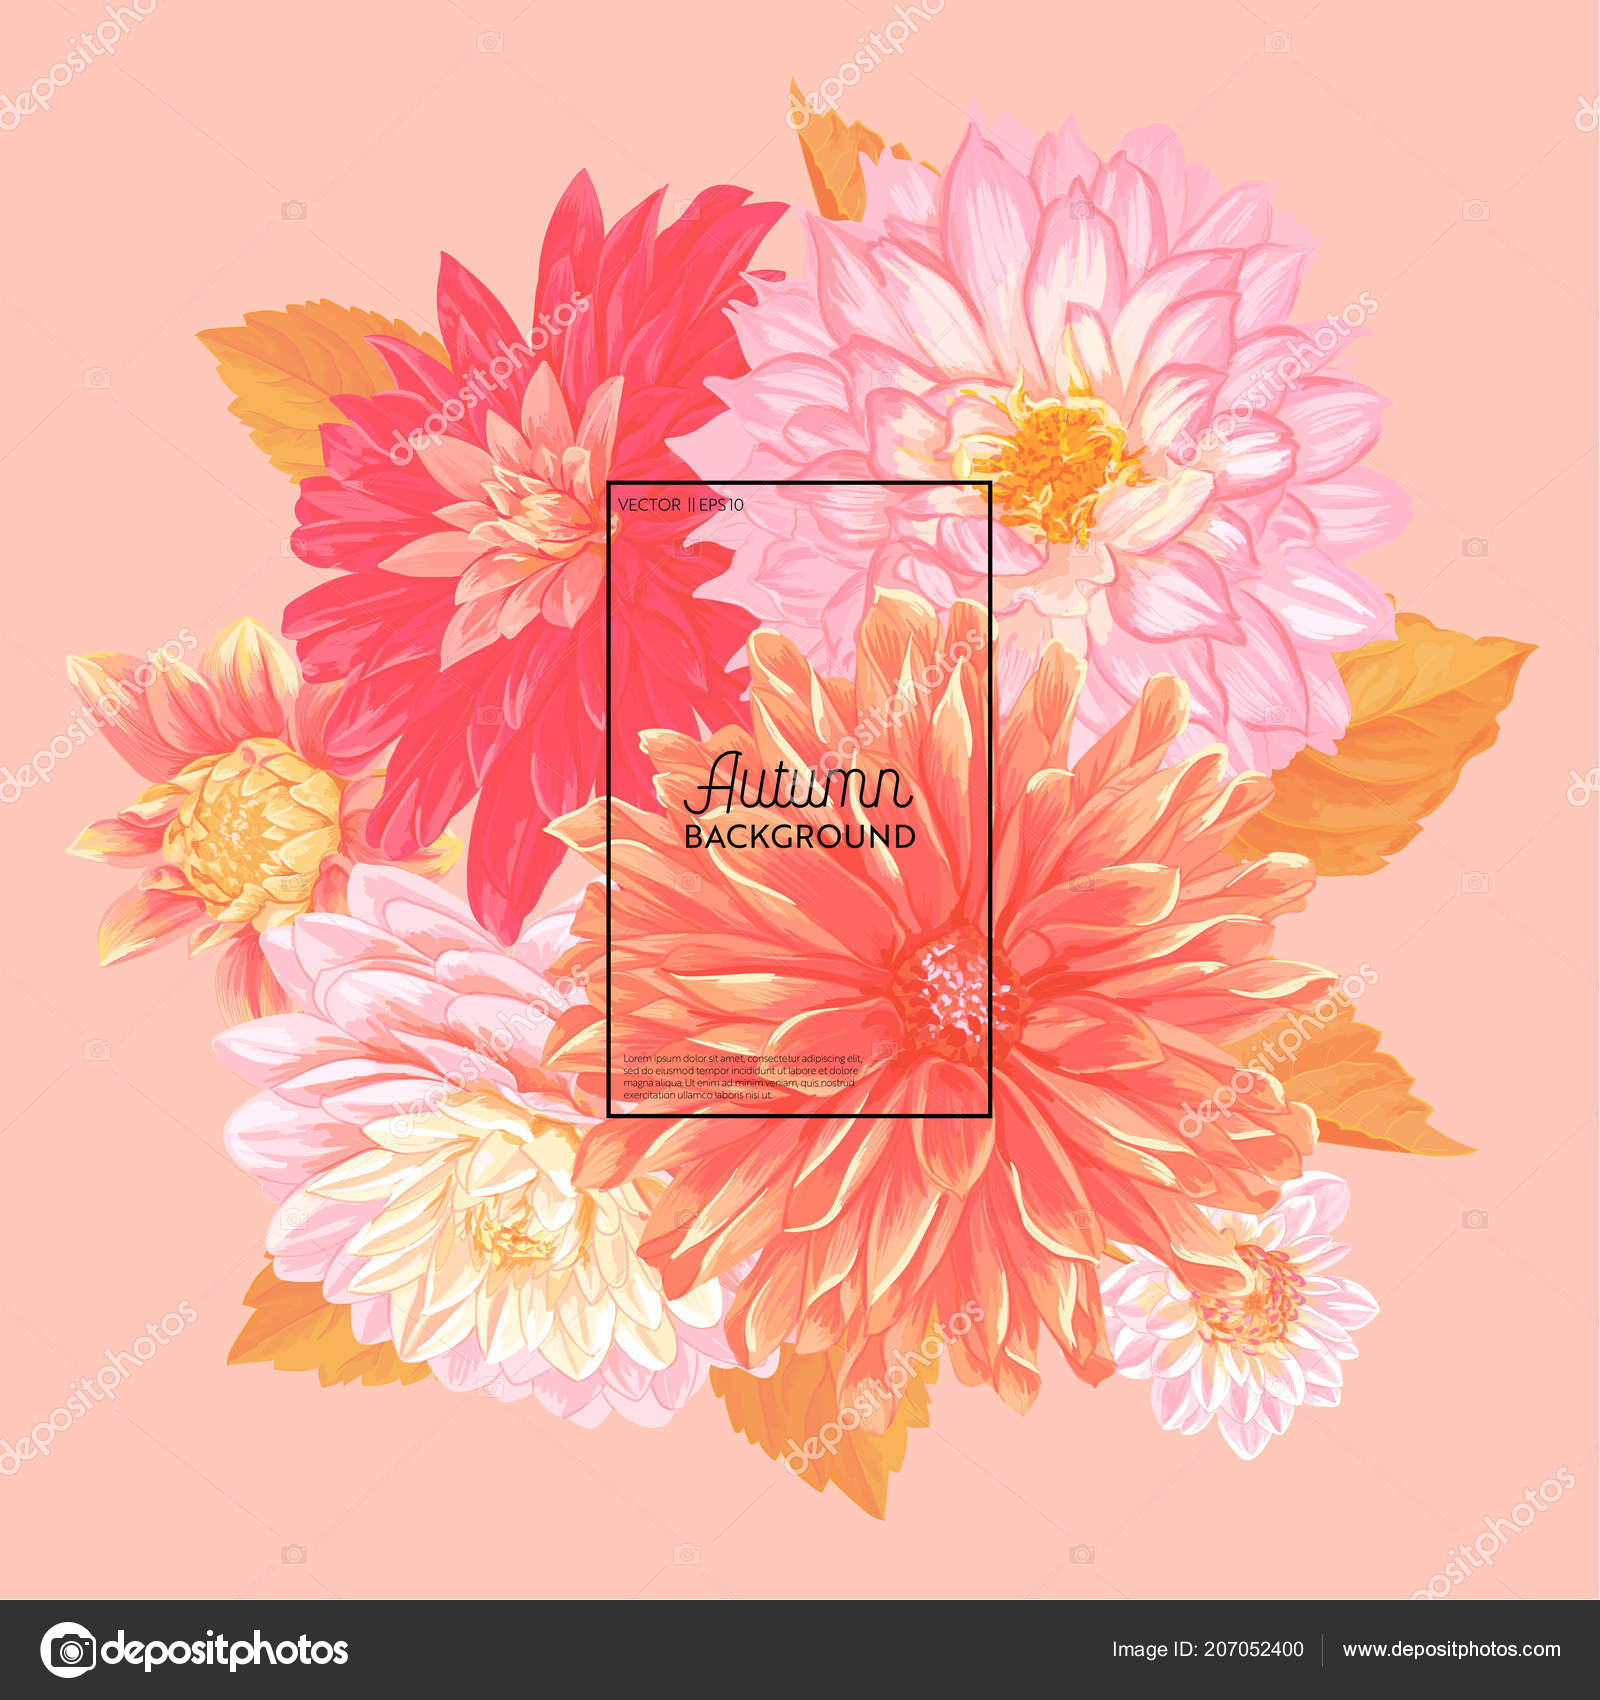 Hello Autumn Floral Design Seasonal Fall Floral Background For